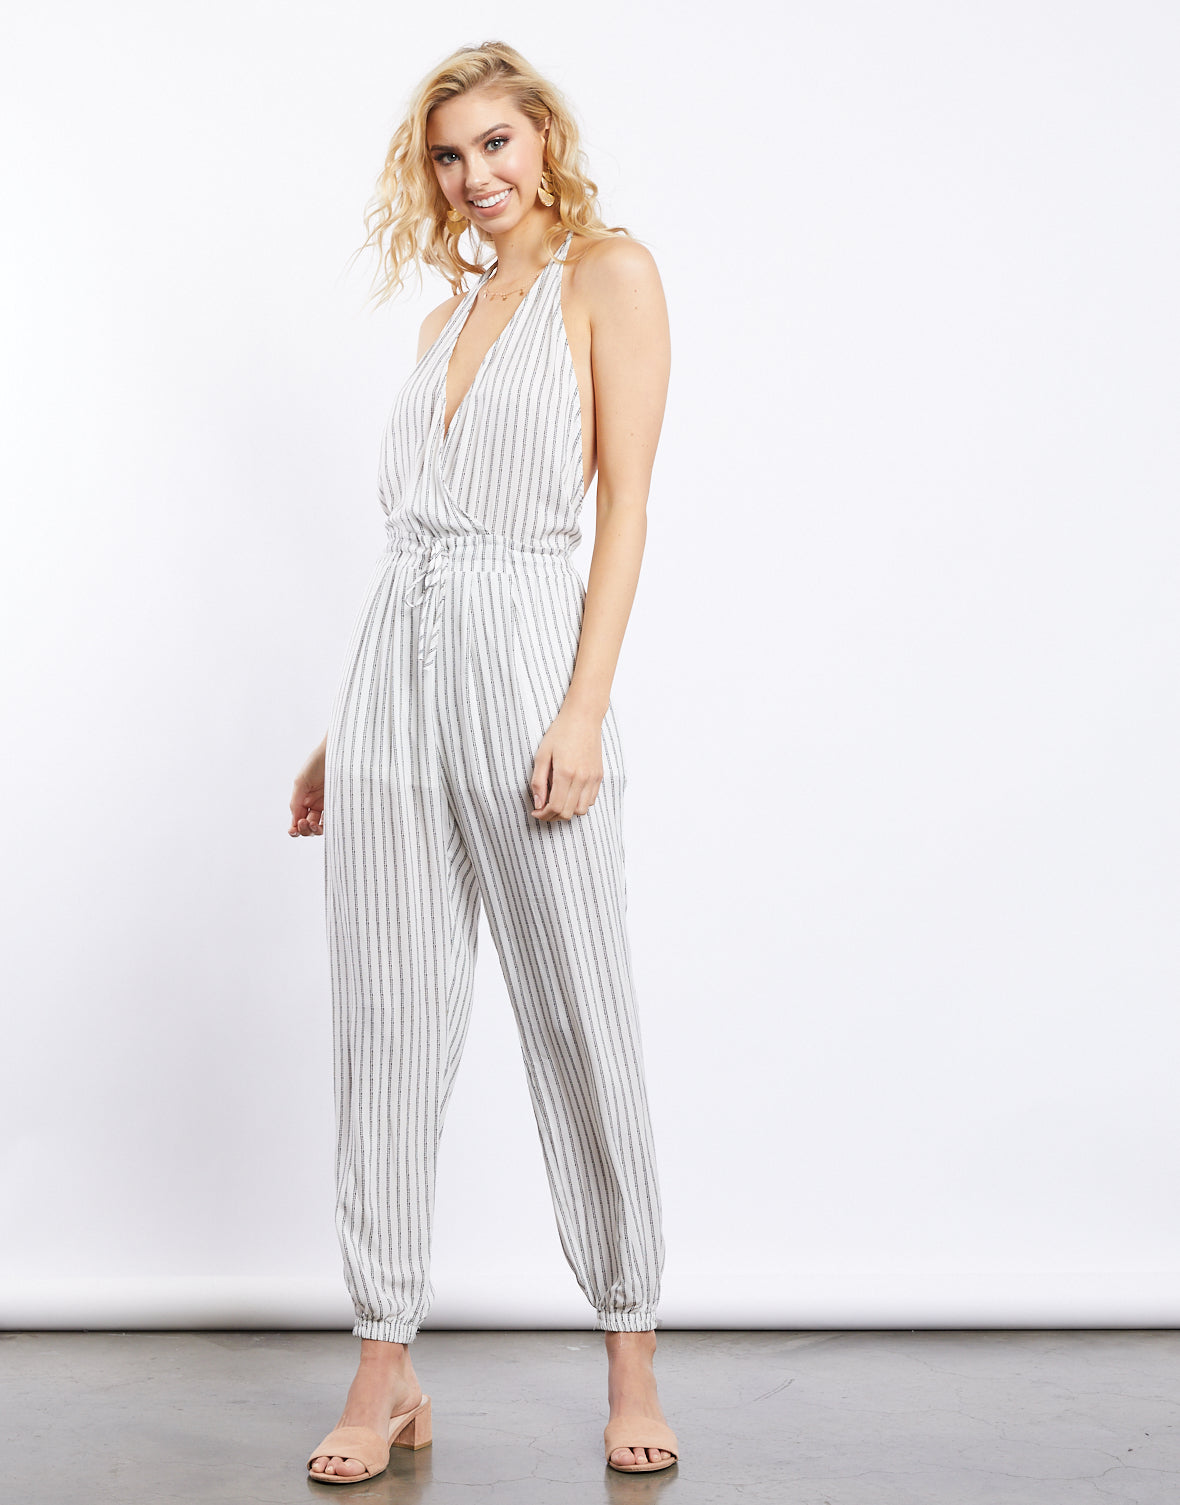 Parallel Lines Jumpsuit